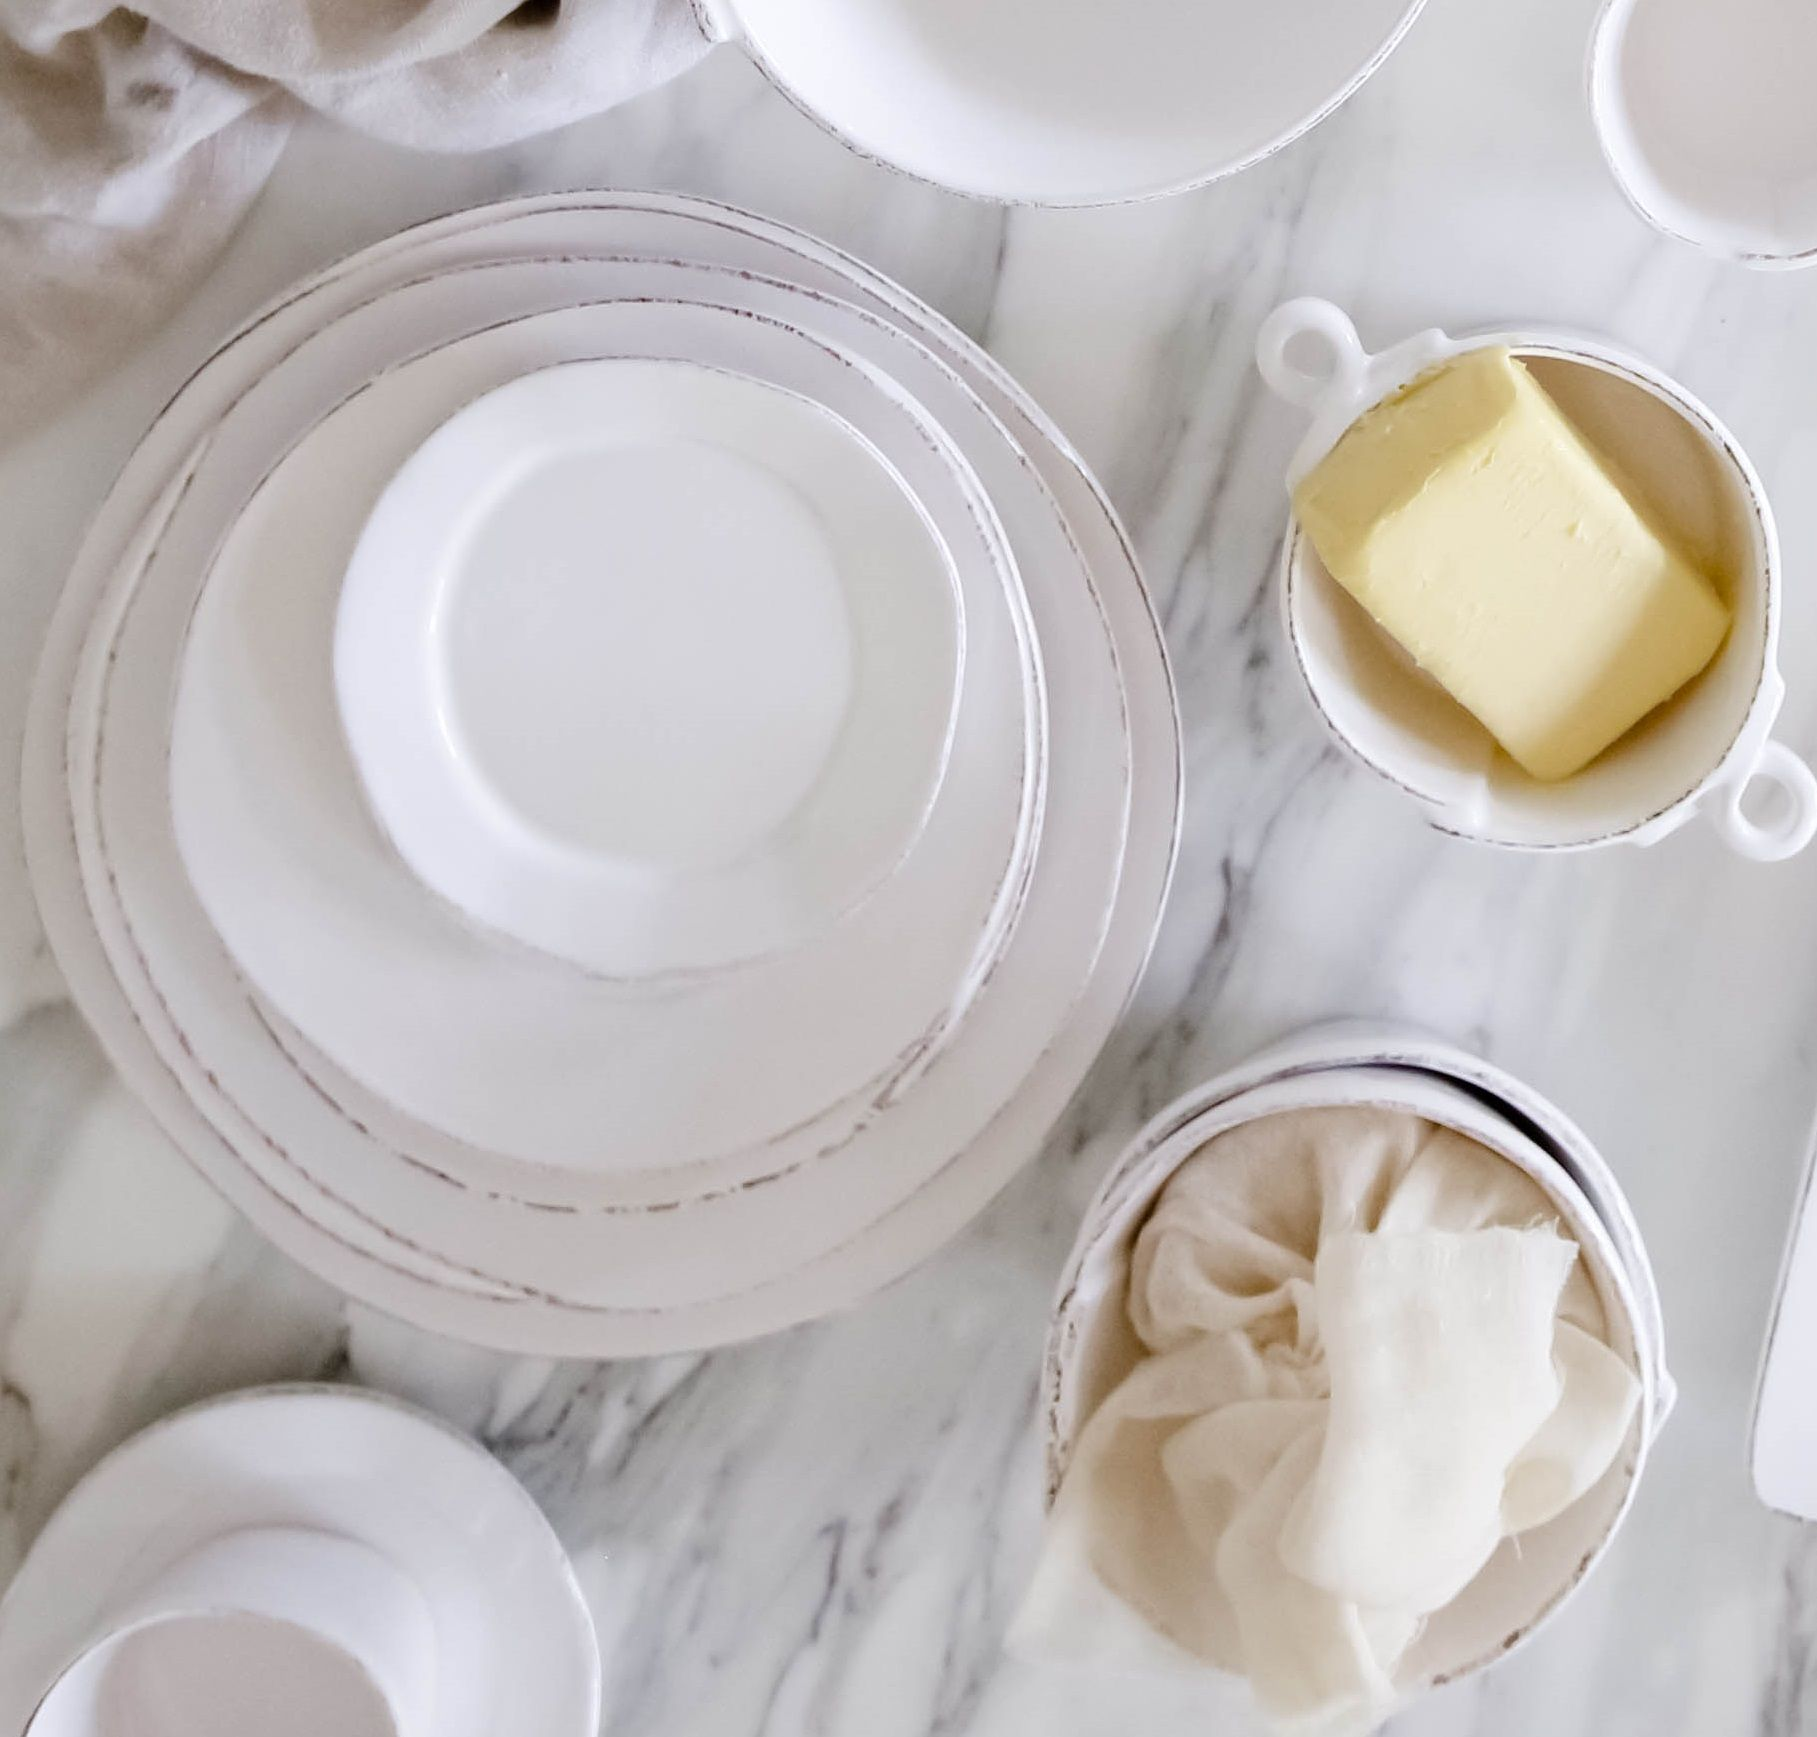 Unique White Dinnerware Made In Italy Italian Ceramics Beautiful Place Settings Plates And Bowls White Dinnerware Ceramic Tableware Dinnerware